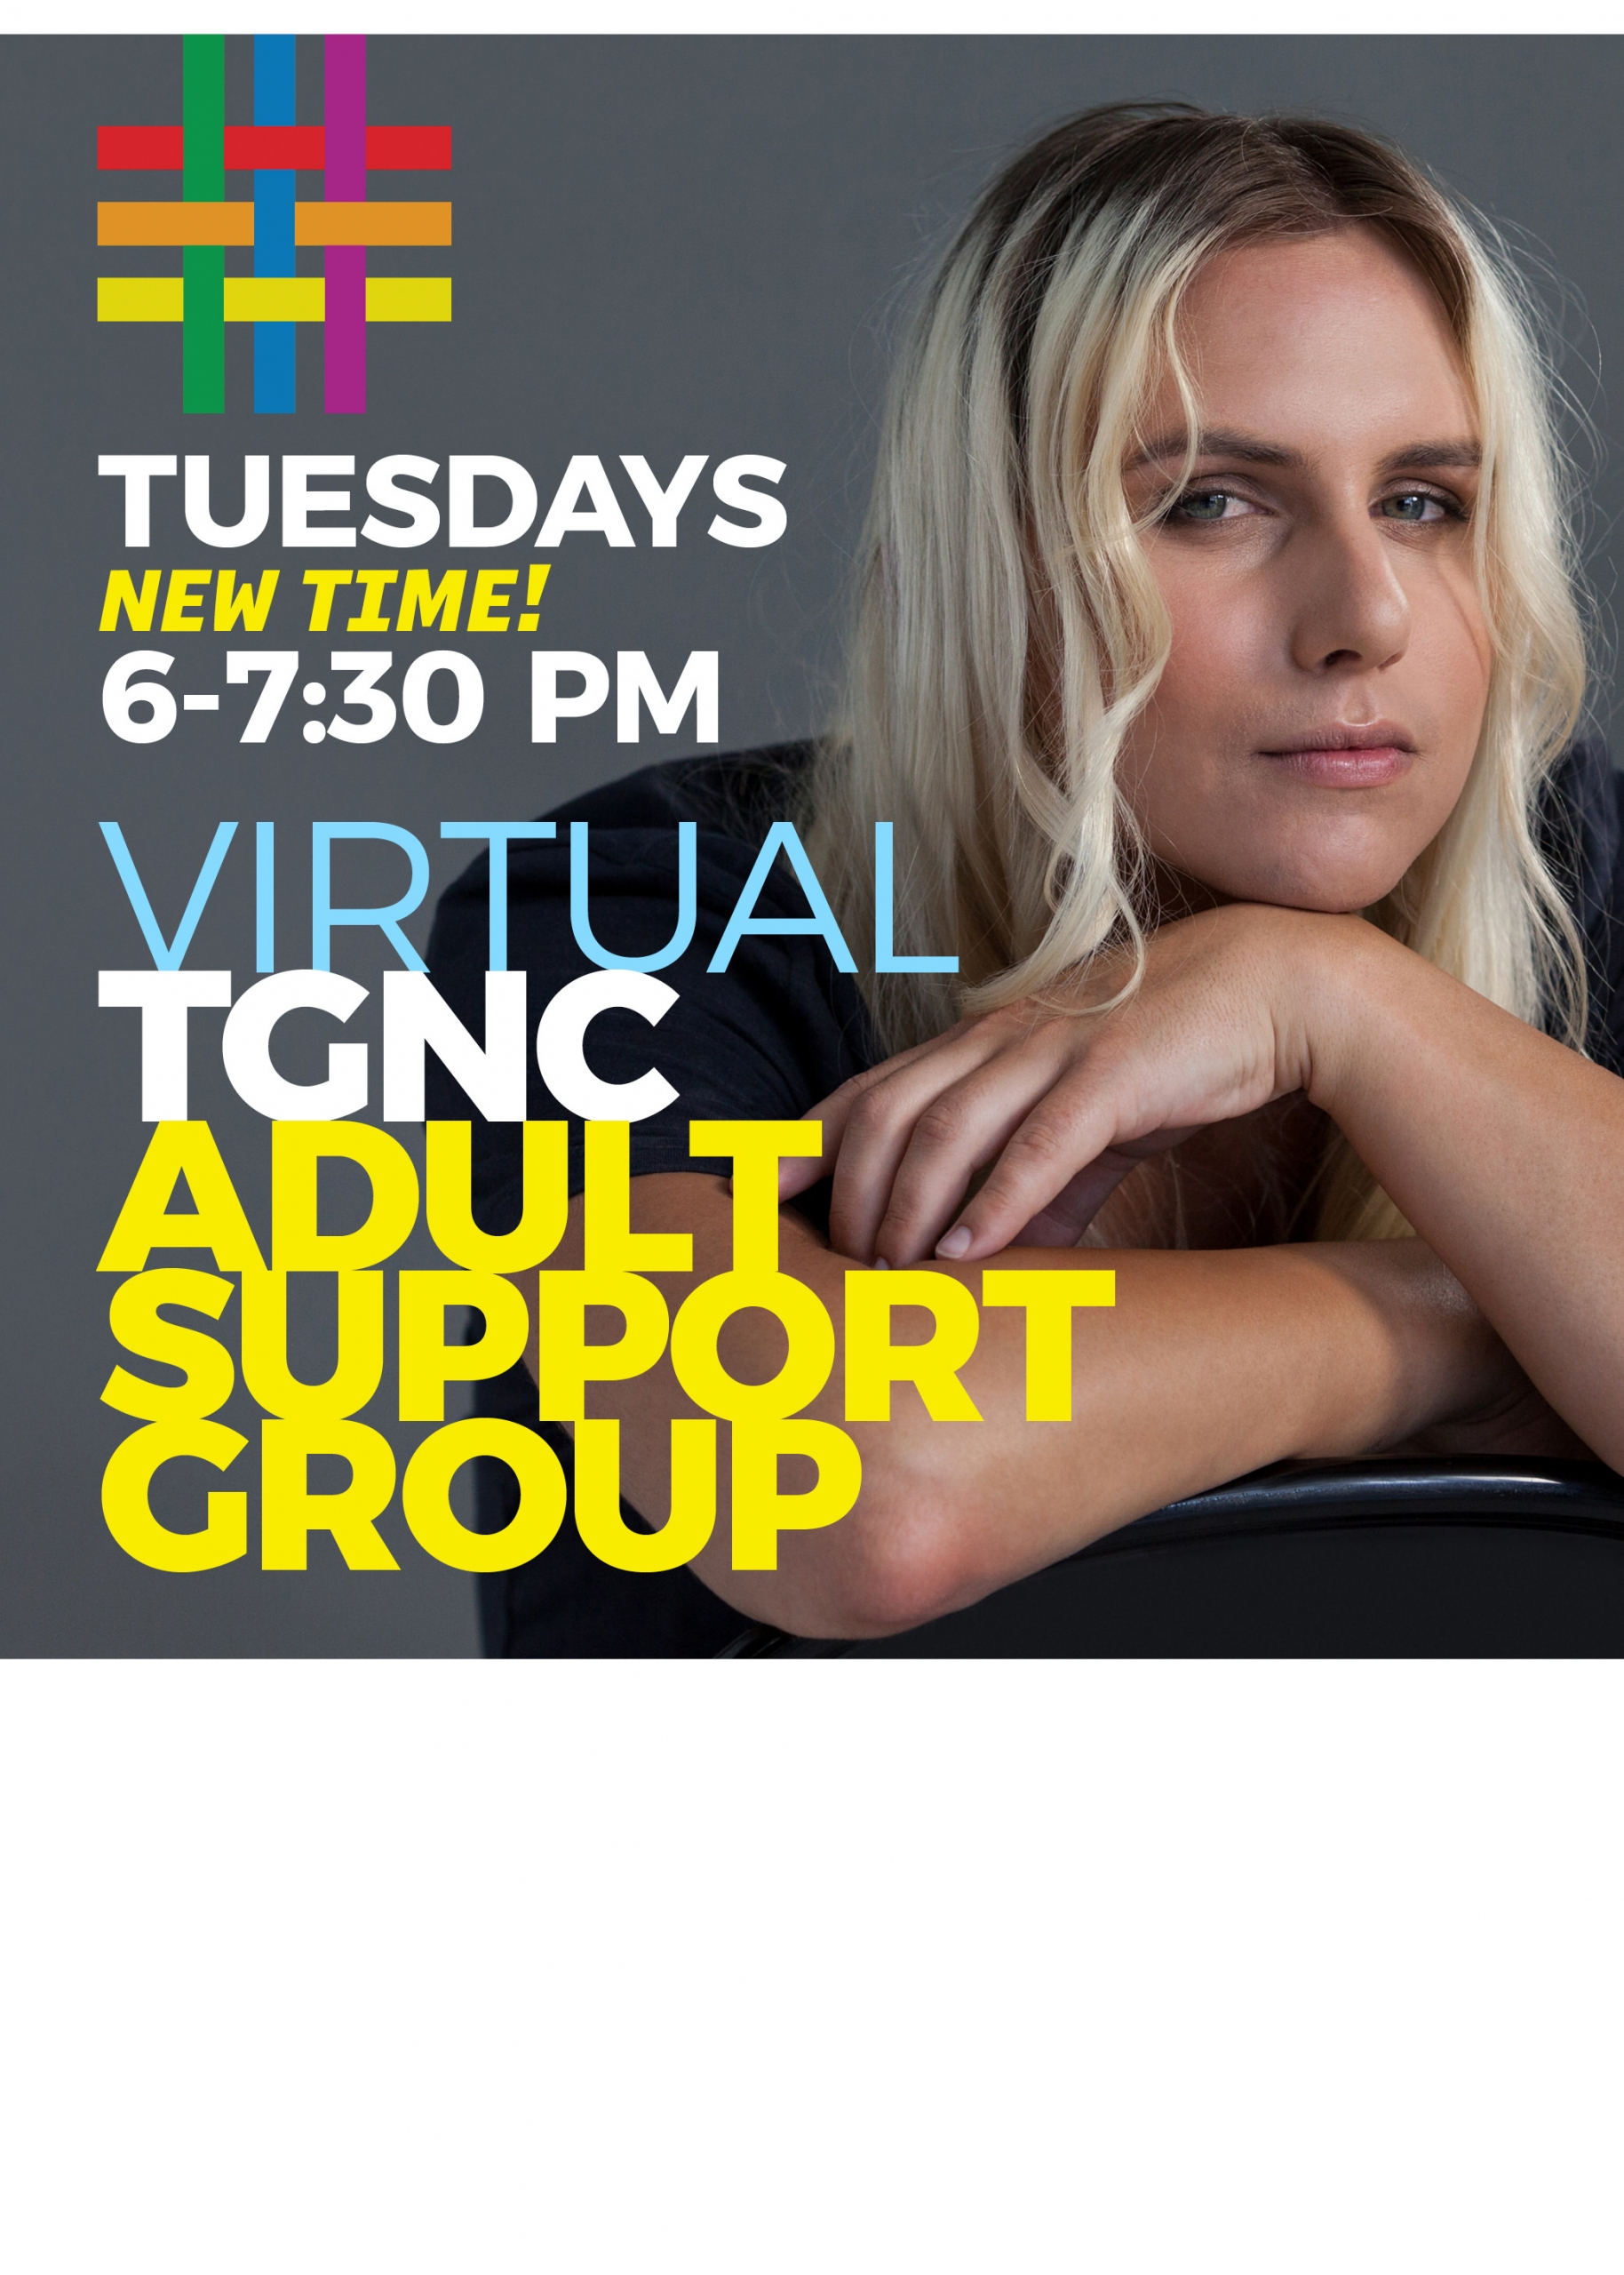 VIRTUAL: TGNC Adult Support Group at Brooklyn Community Pride Center